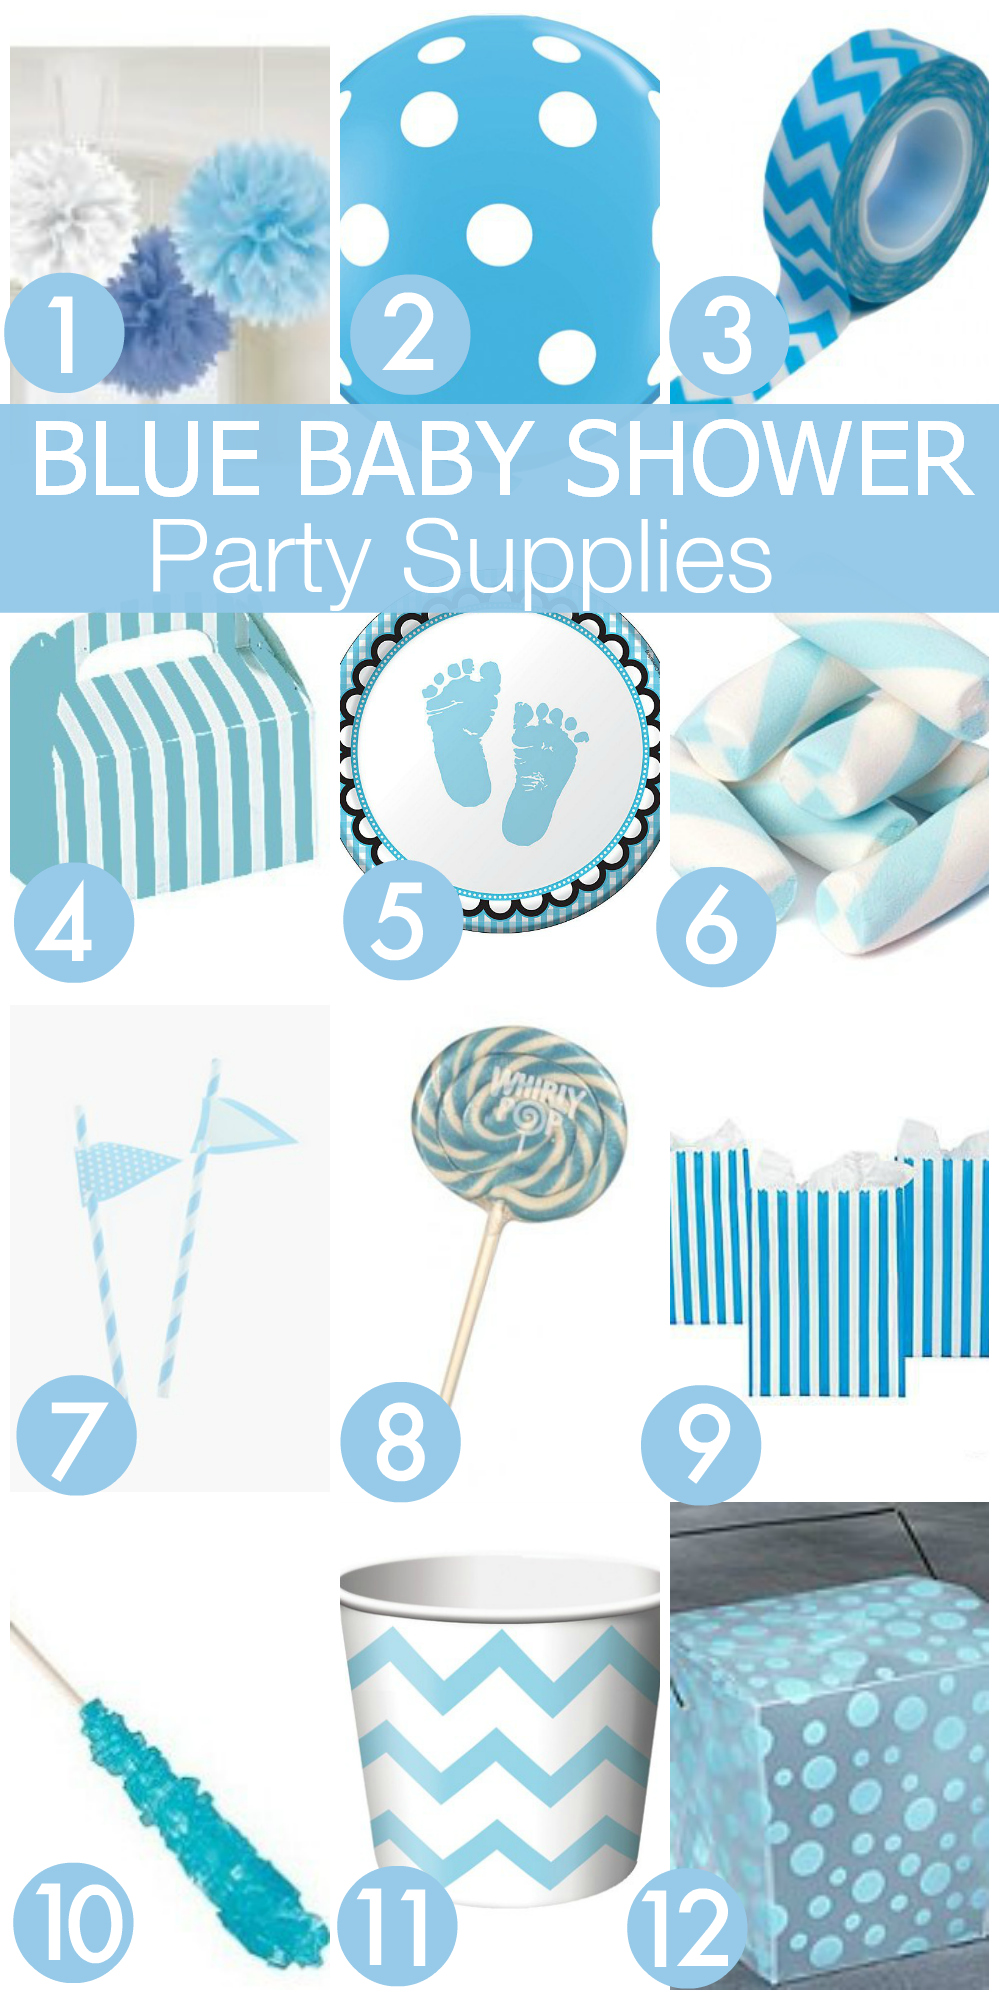 here are some hand selected baby shower party supplies from the catch